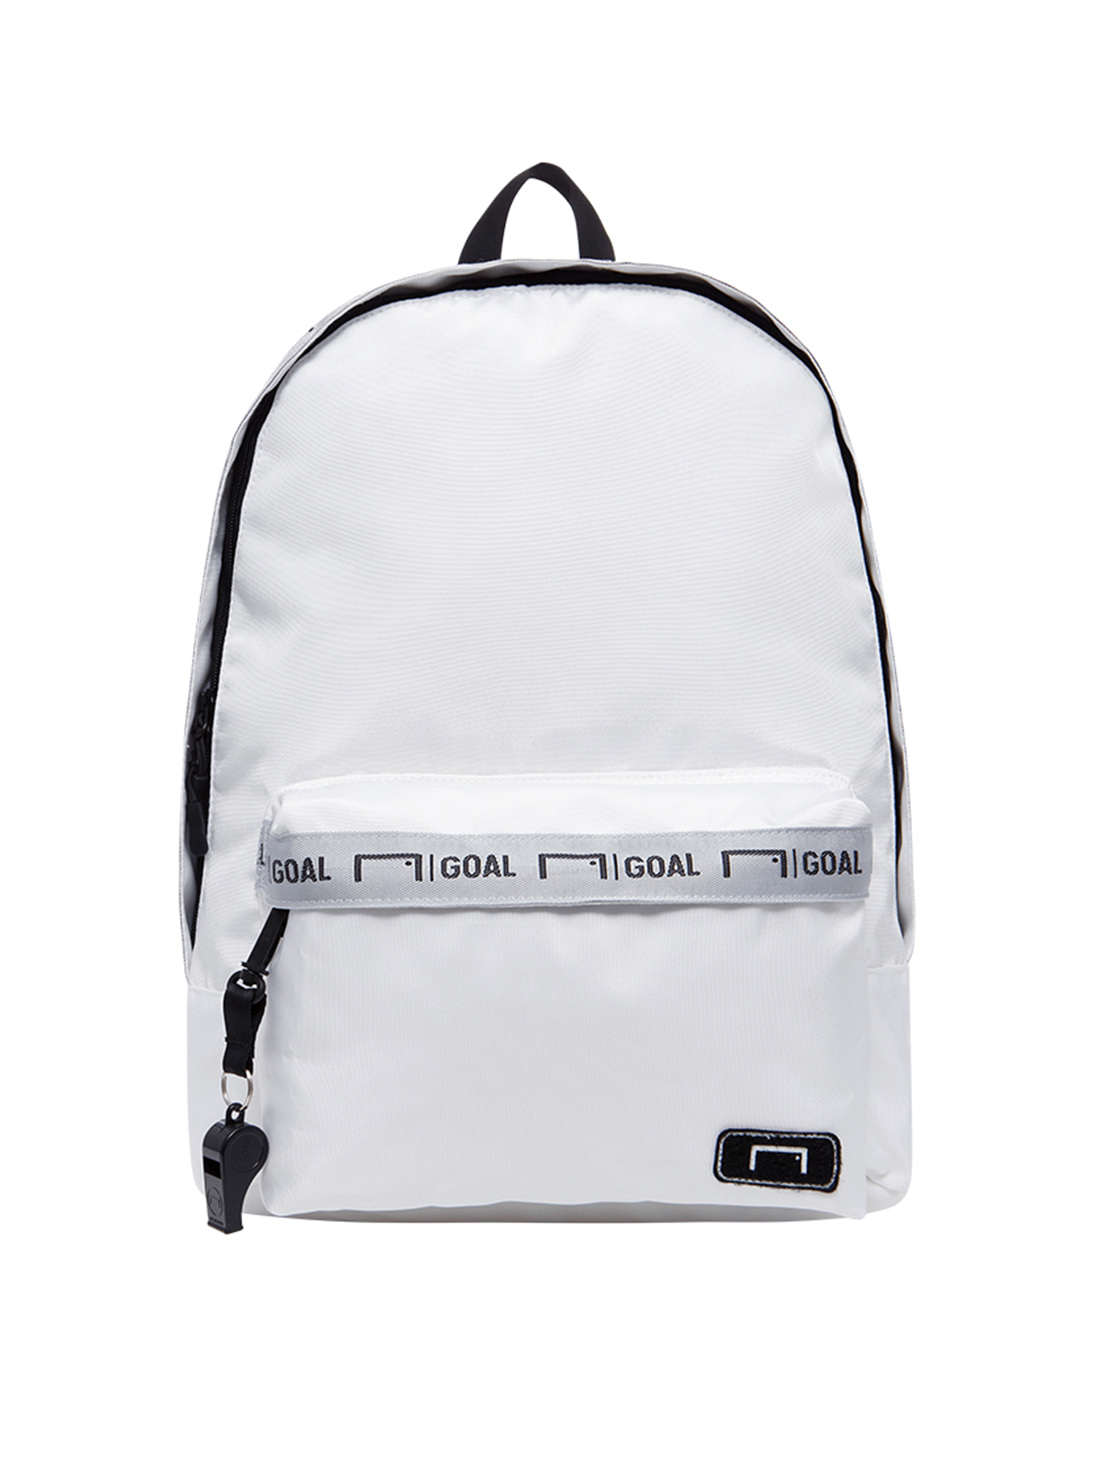 GOALSTUDIO GOAL TAPE BACKPACK - WHITE